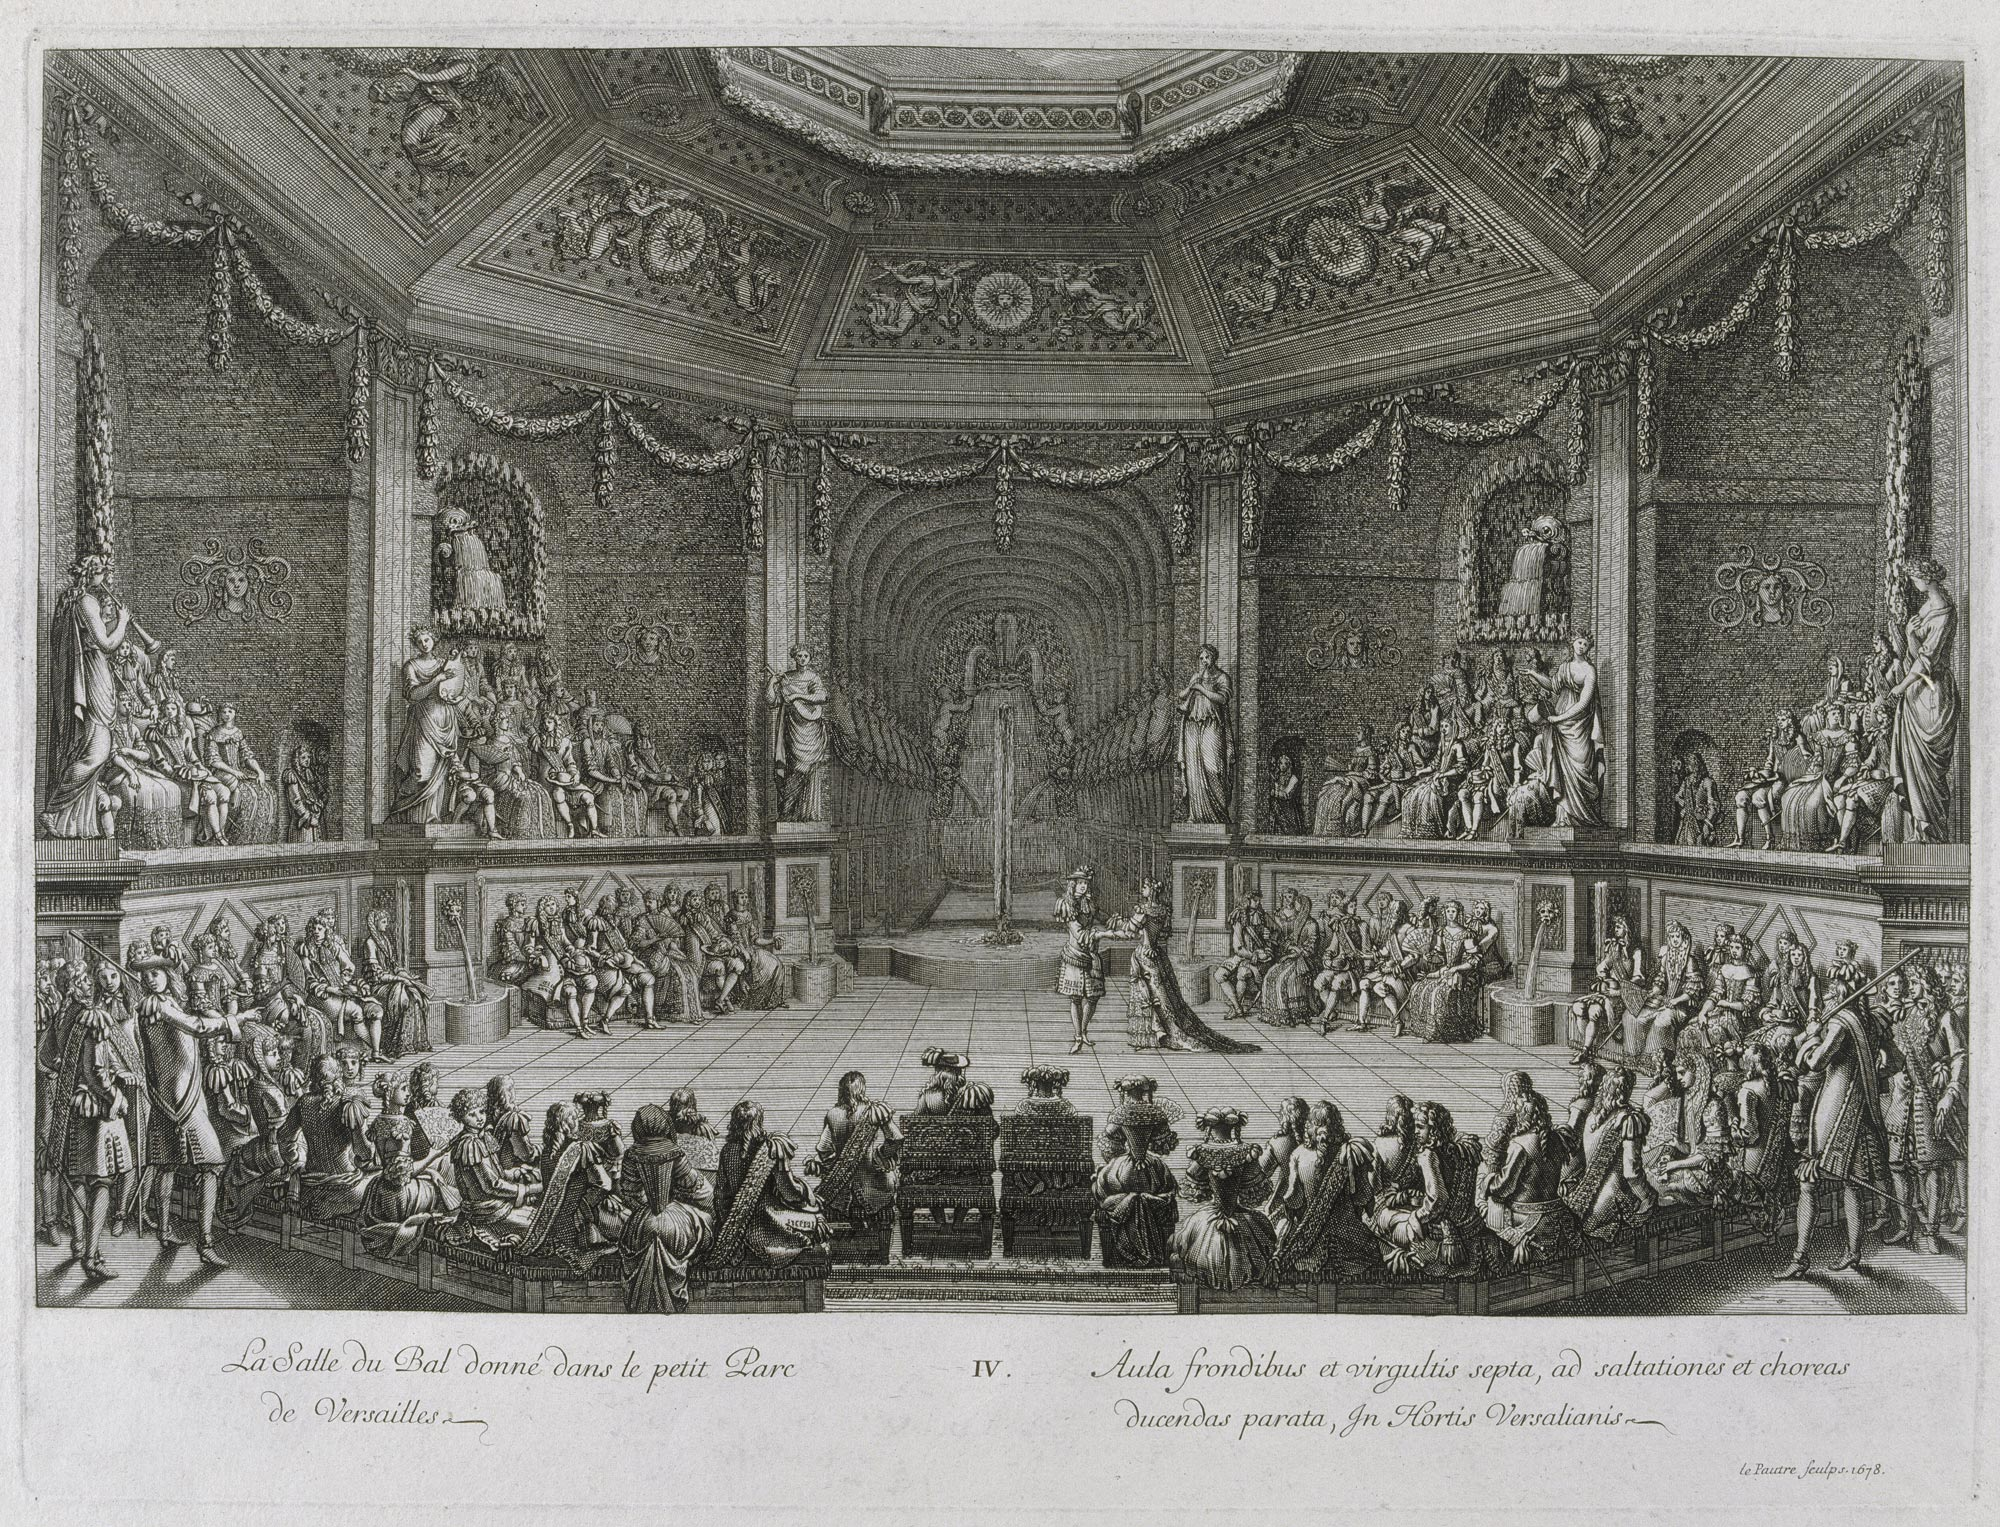 The Grand Royal Entertainment given by Louis XIV in Versailles on 18 July  1668, Jean